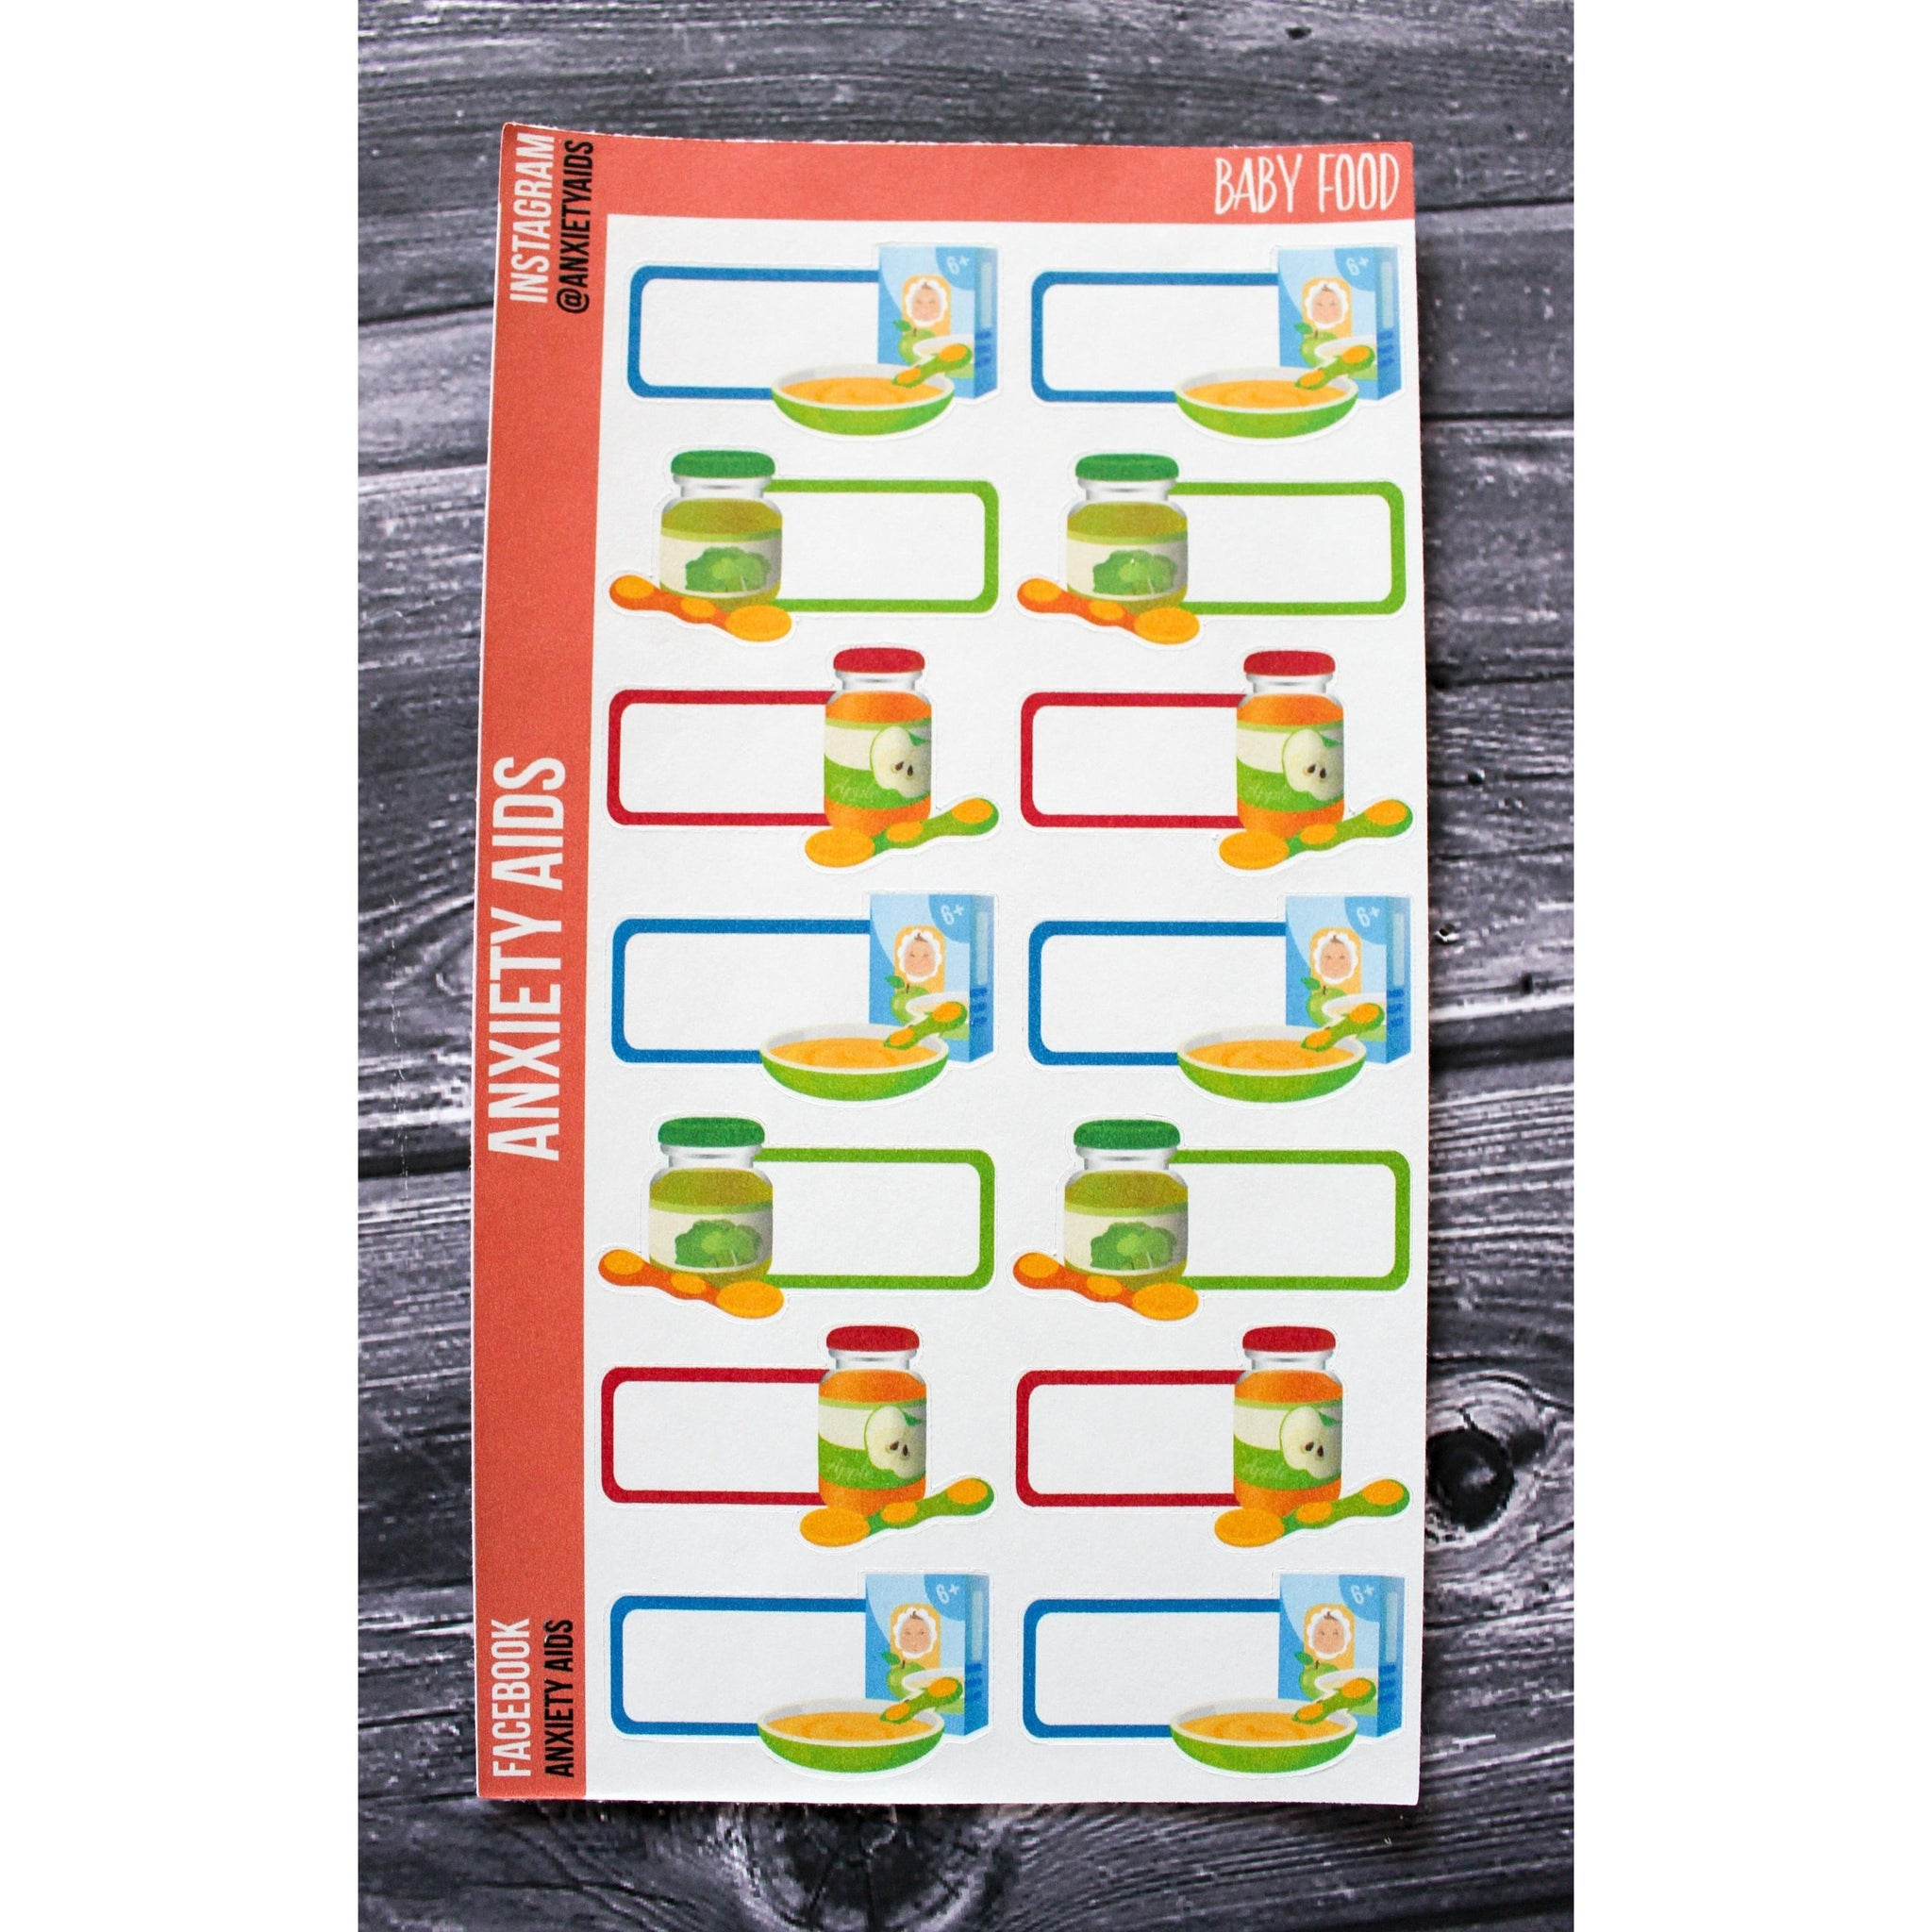 Baby Food Tracker Planner Stickers